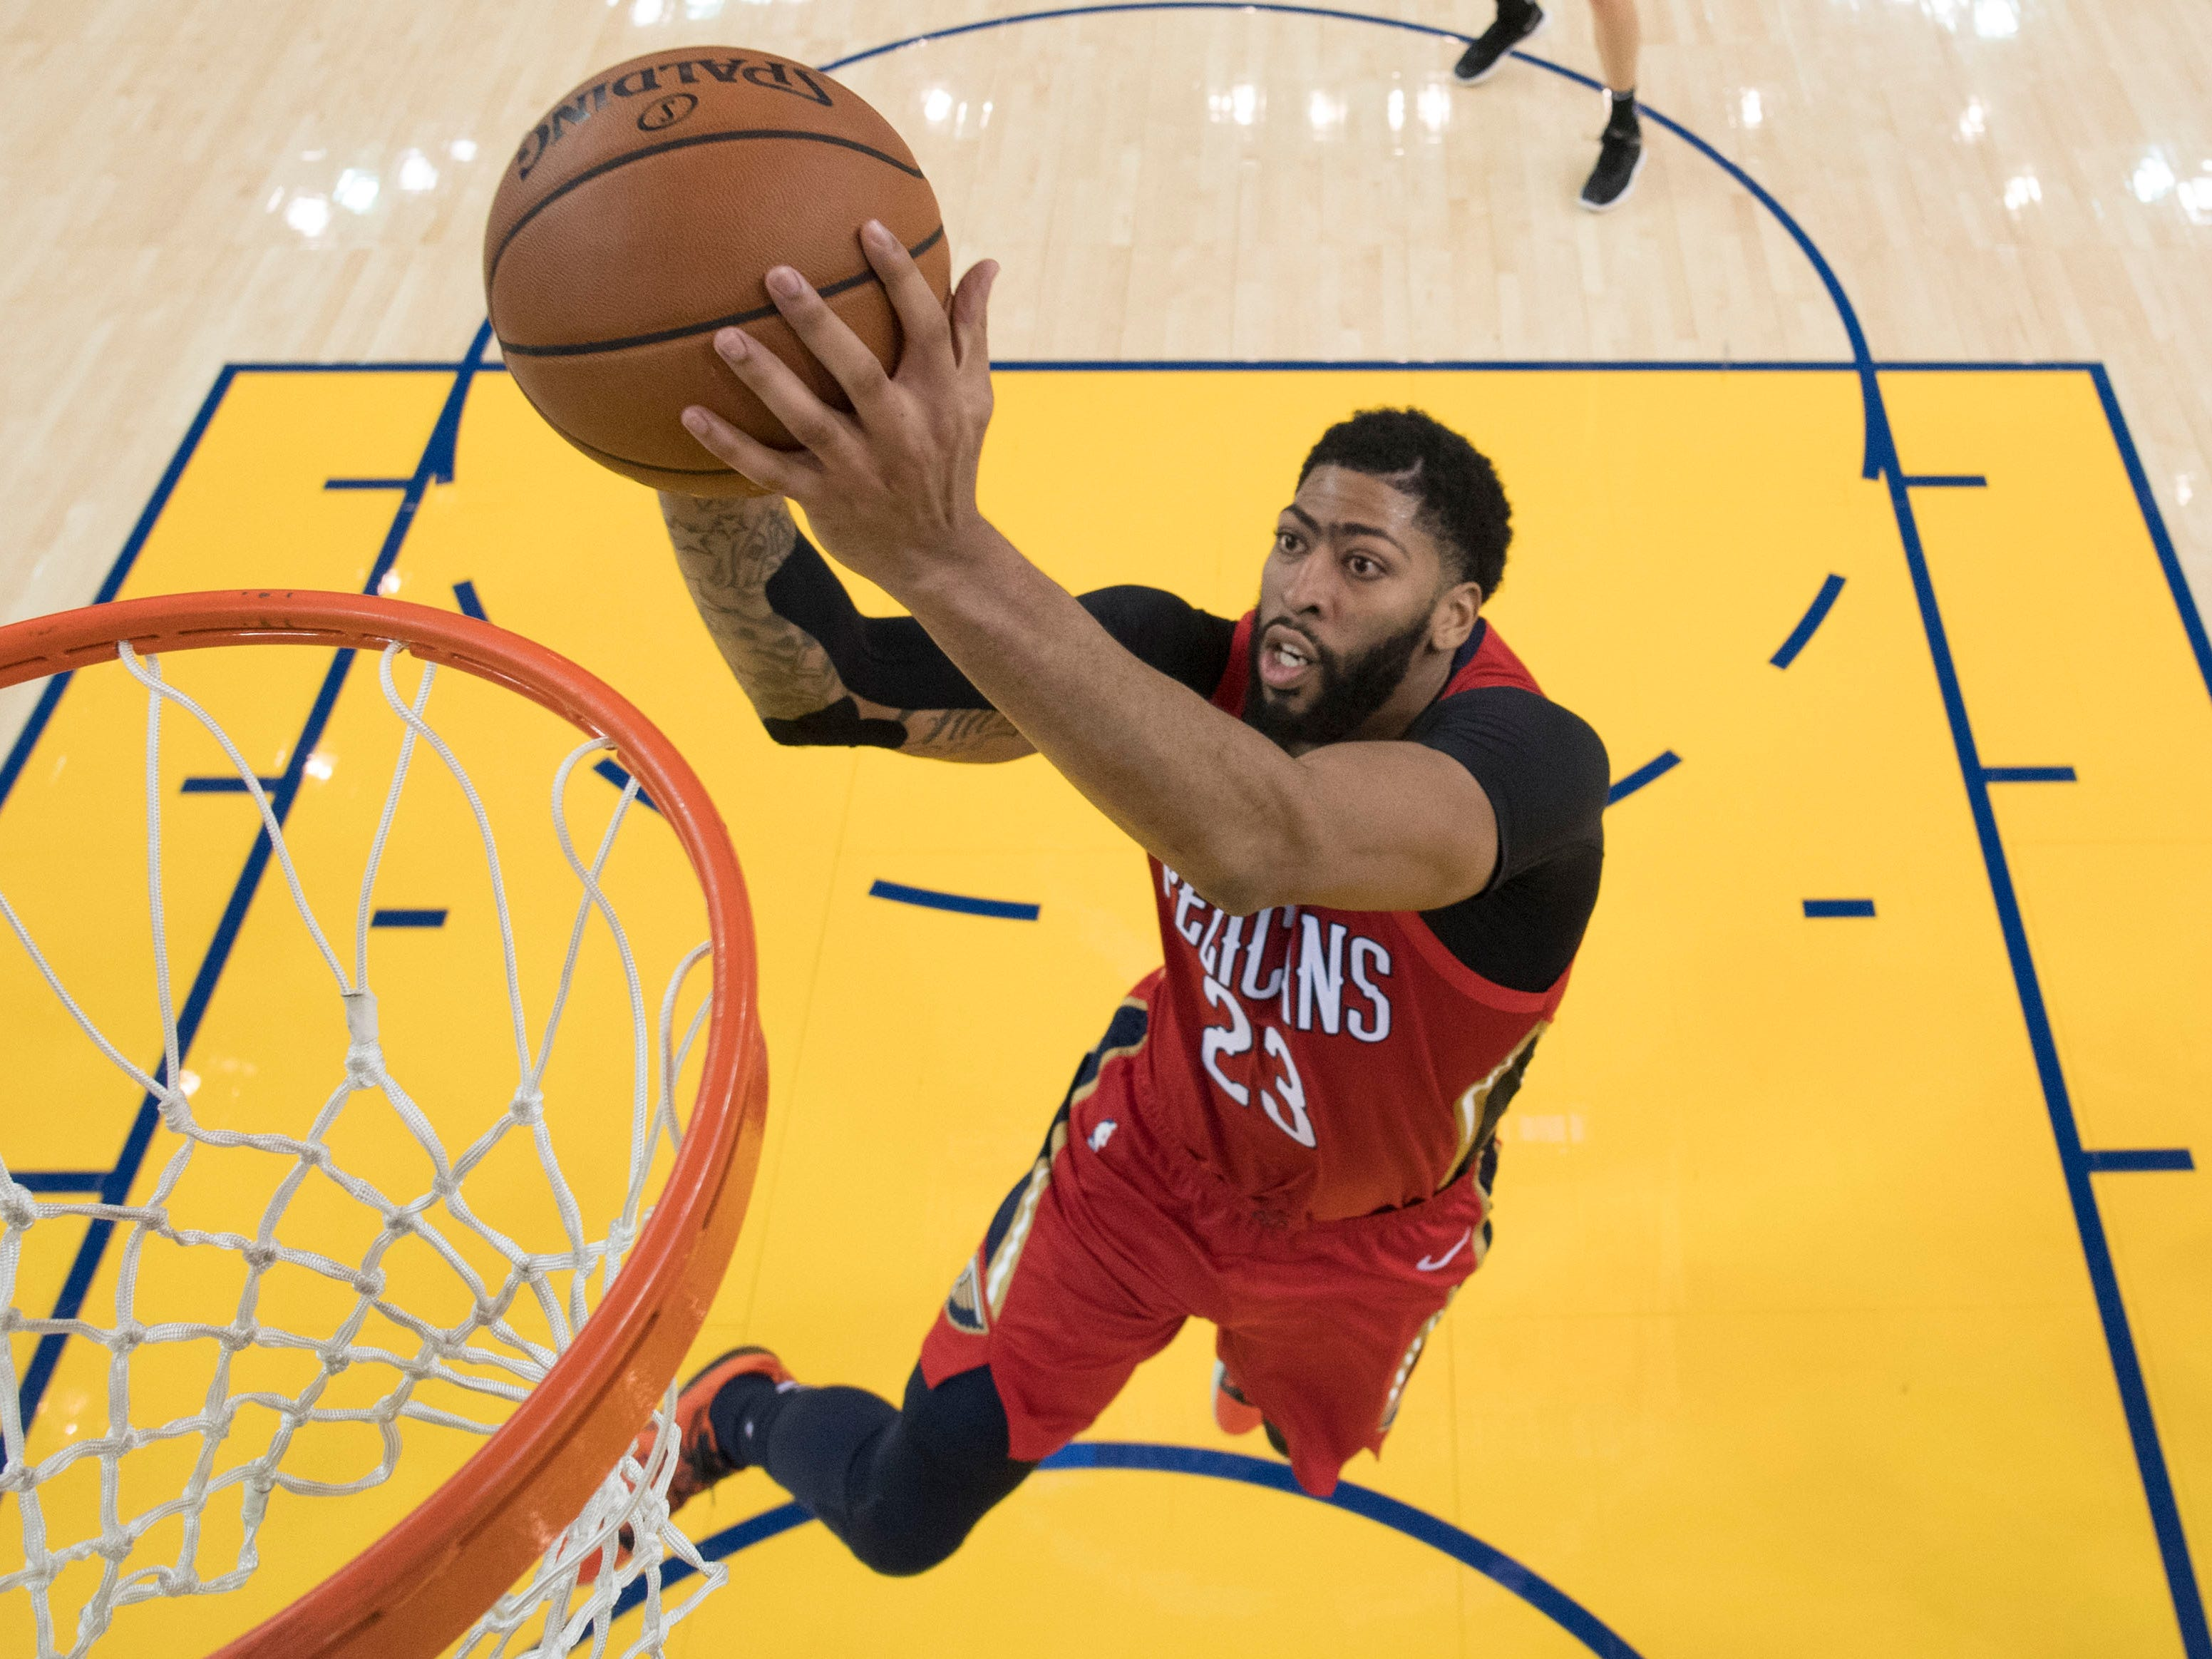 Oct. 31: Pelicans forward Anthony Davis dunks the basketball against the Warriors during the second half at Oracle Arena.